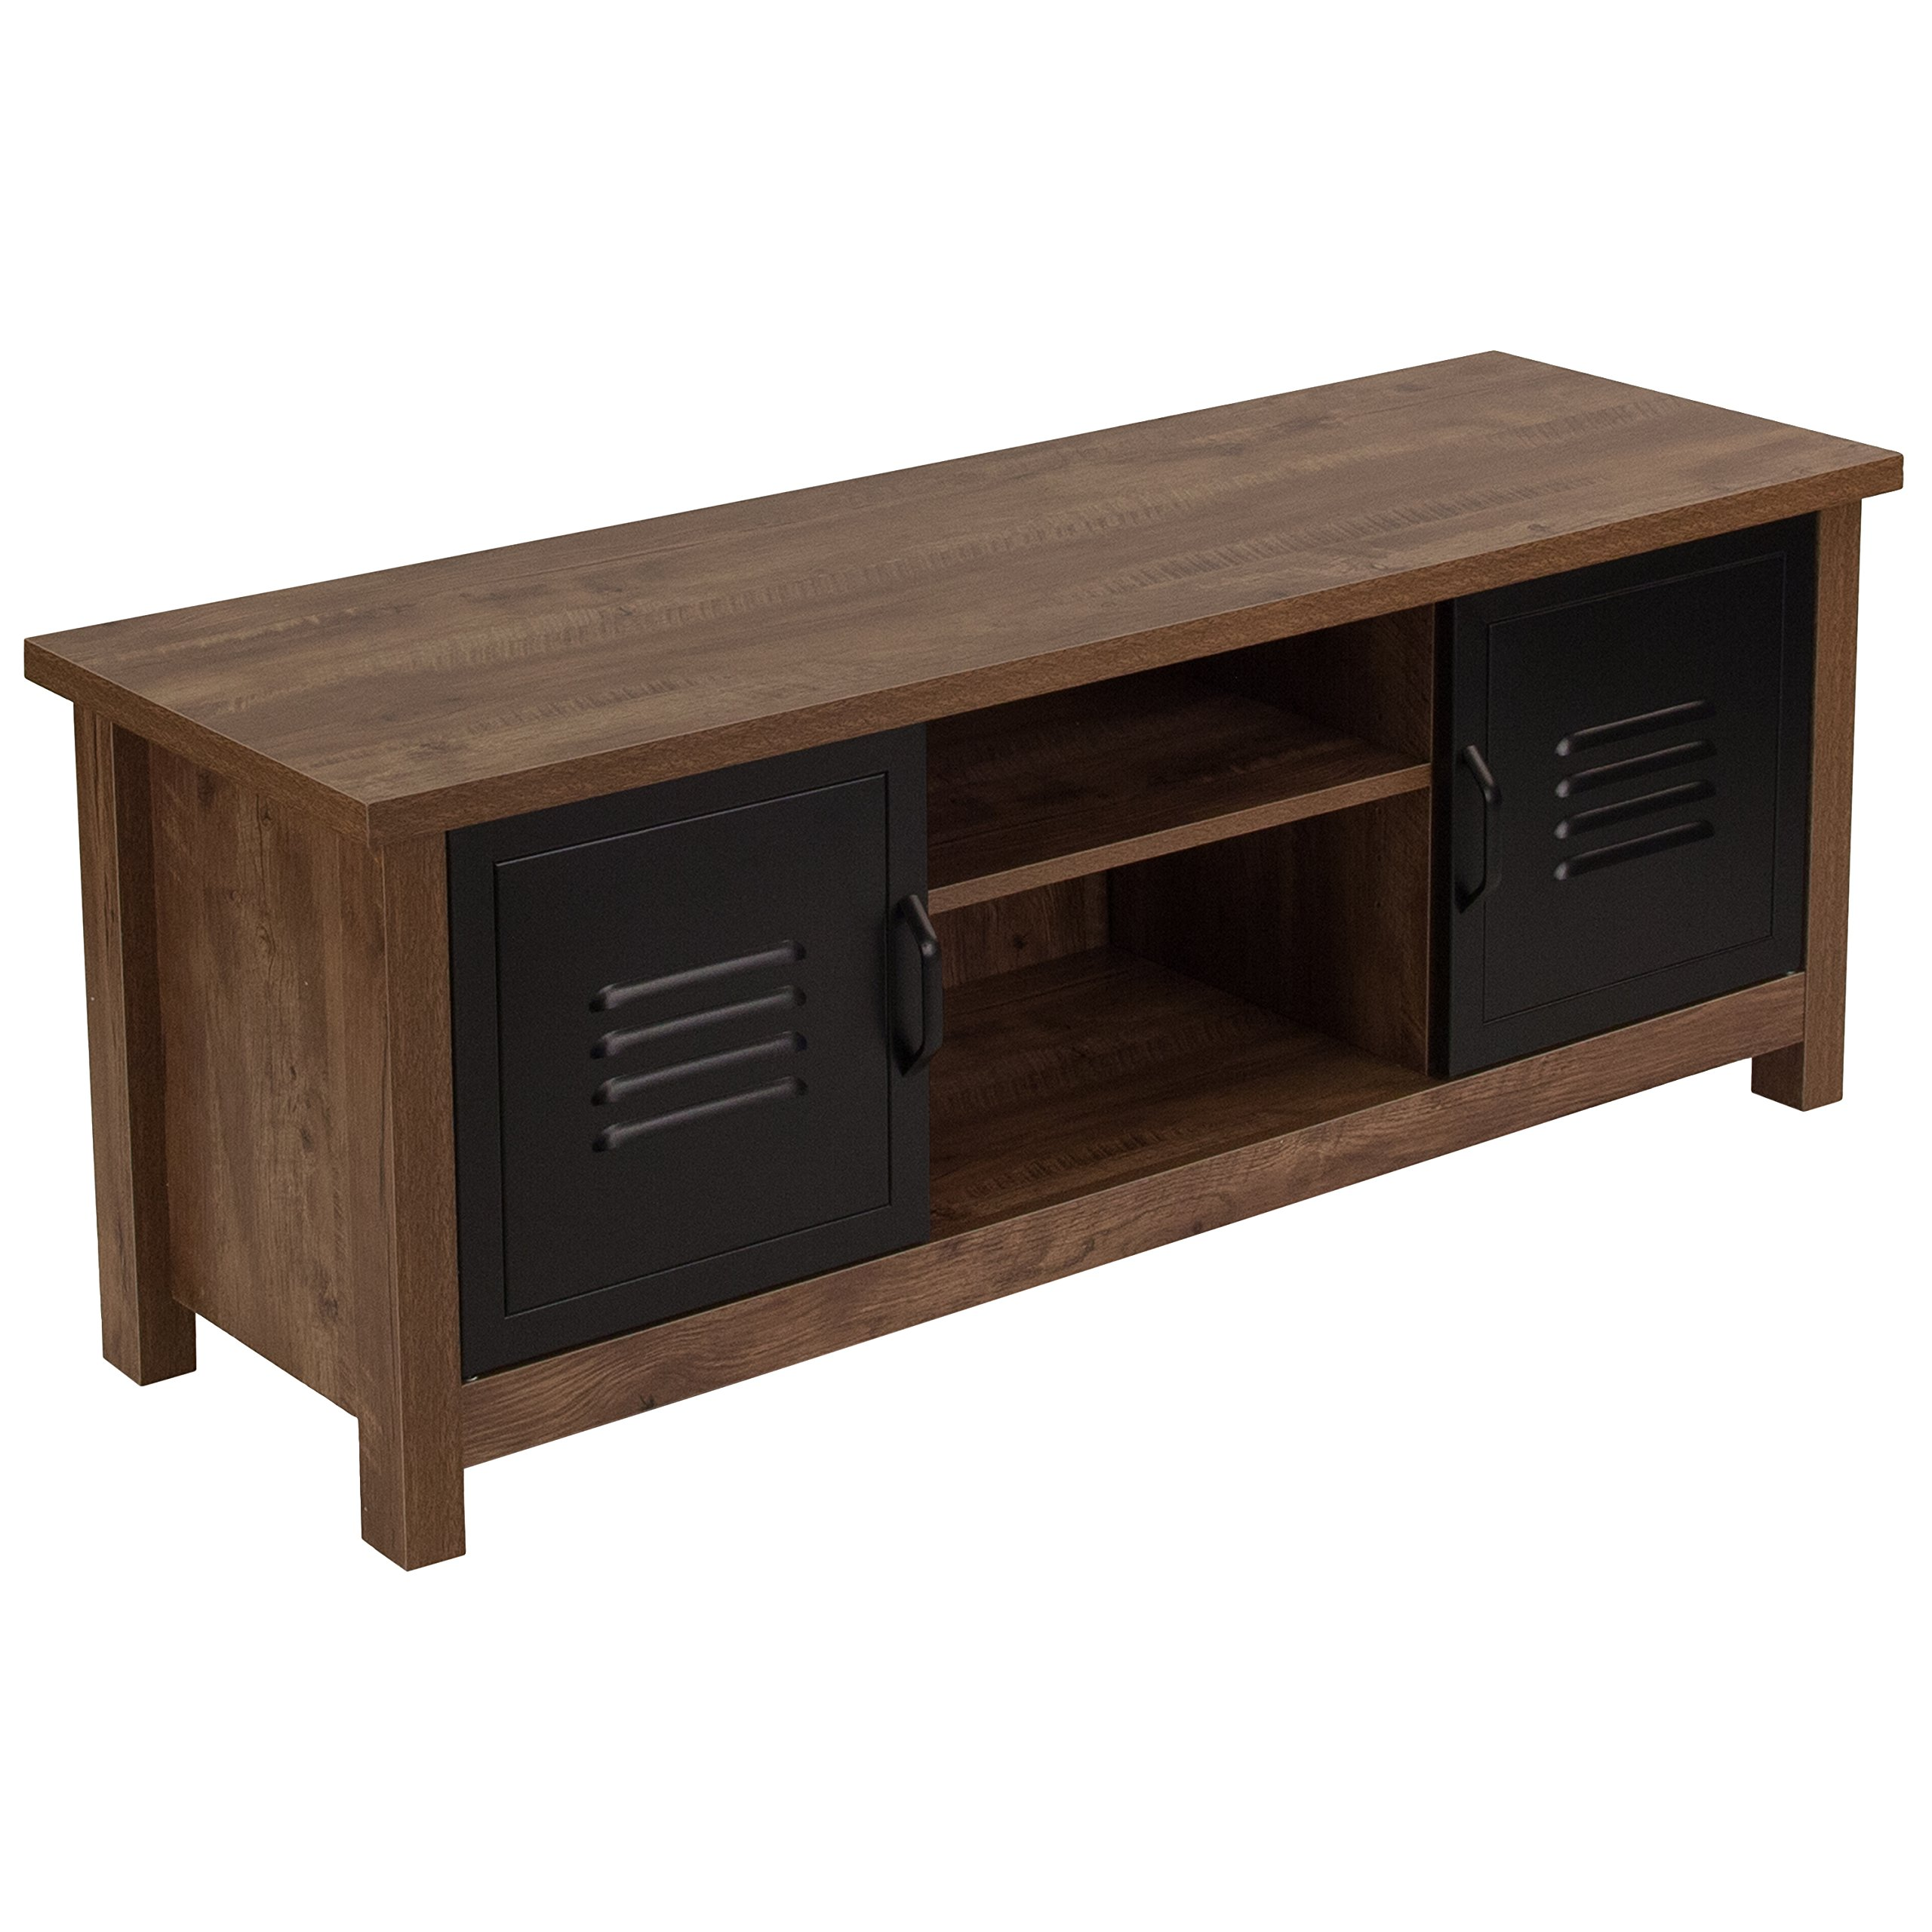 Flash Furniture New Lancaster Collection Crosscut Oak Wood Grain Finish Storage Bench with Metal Cabinet Doors